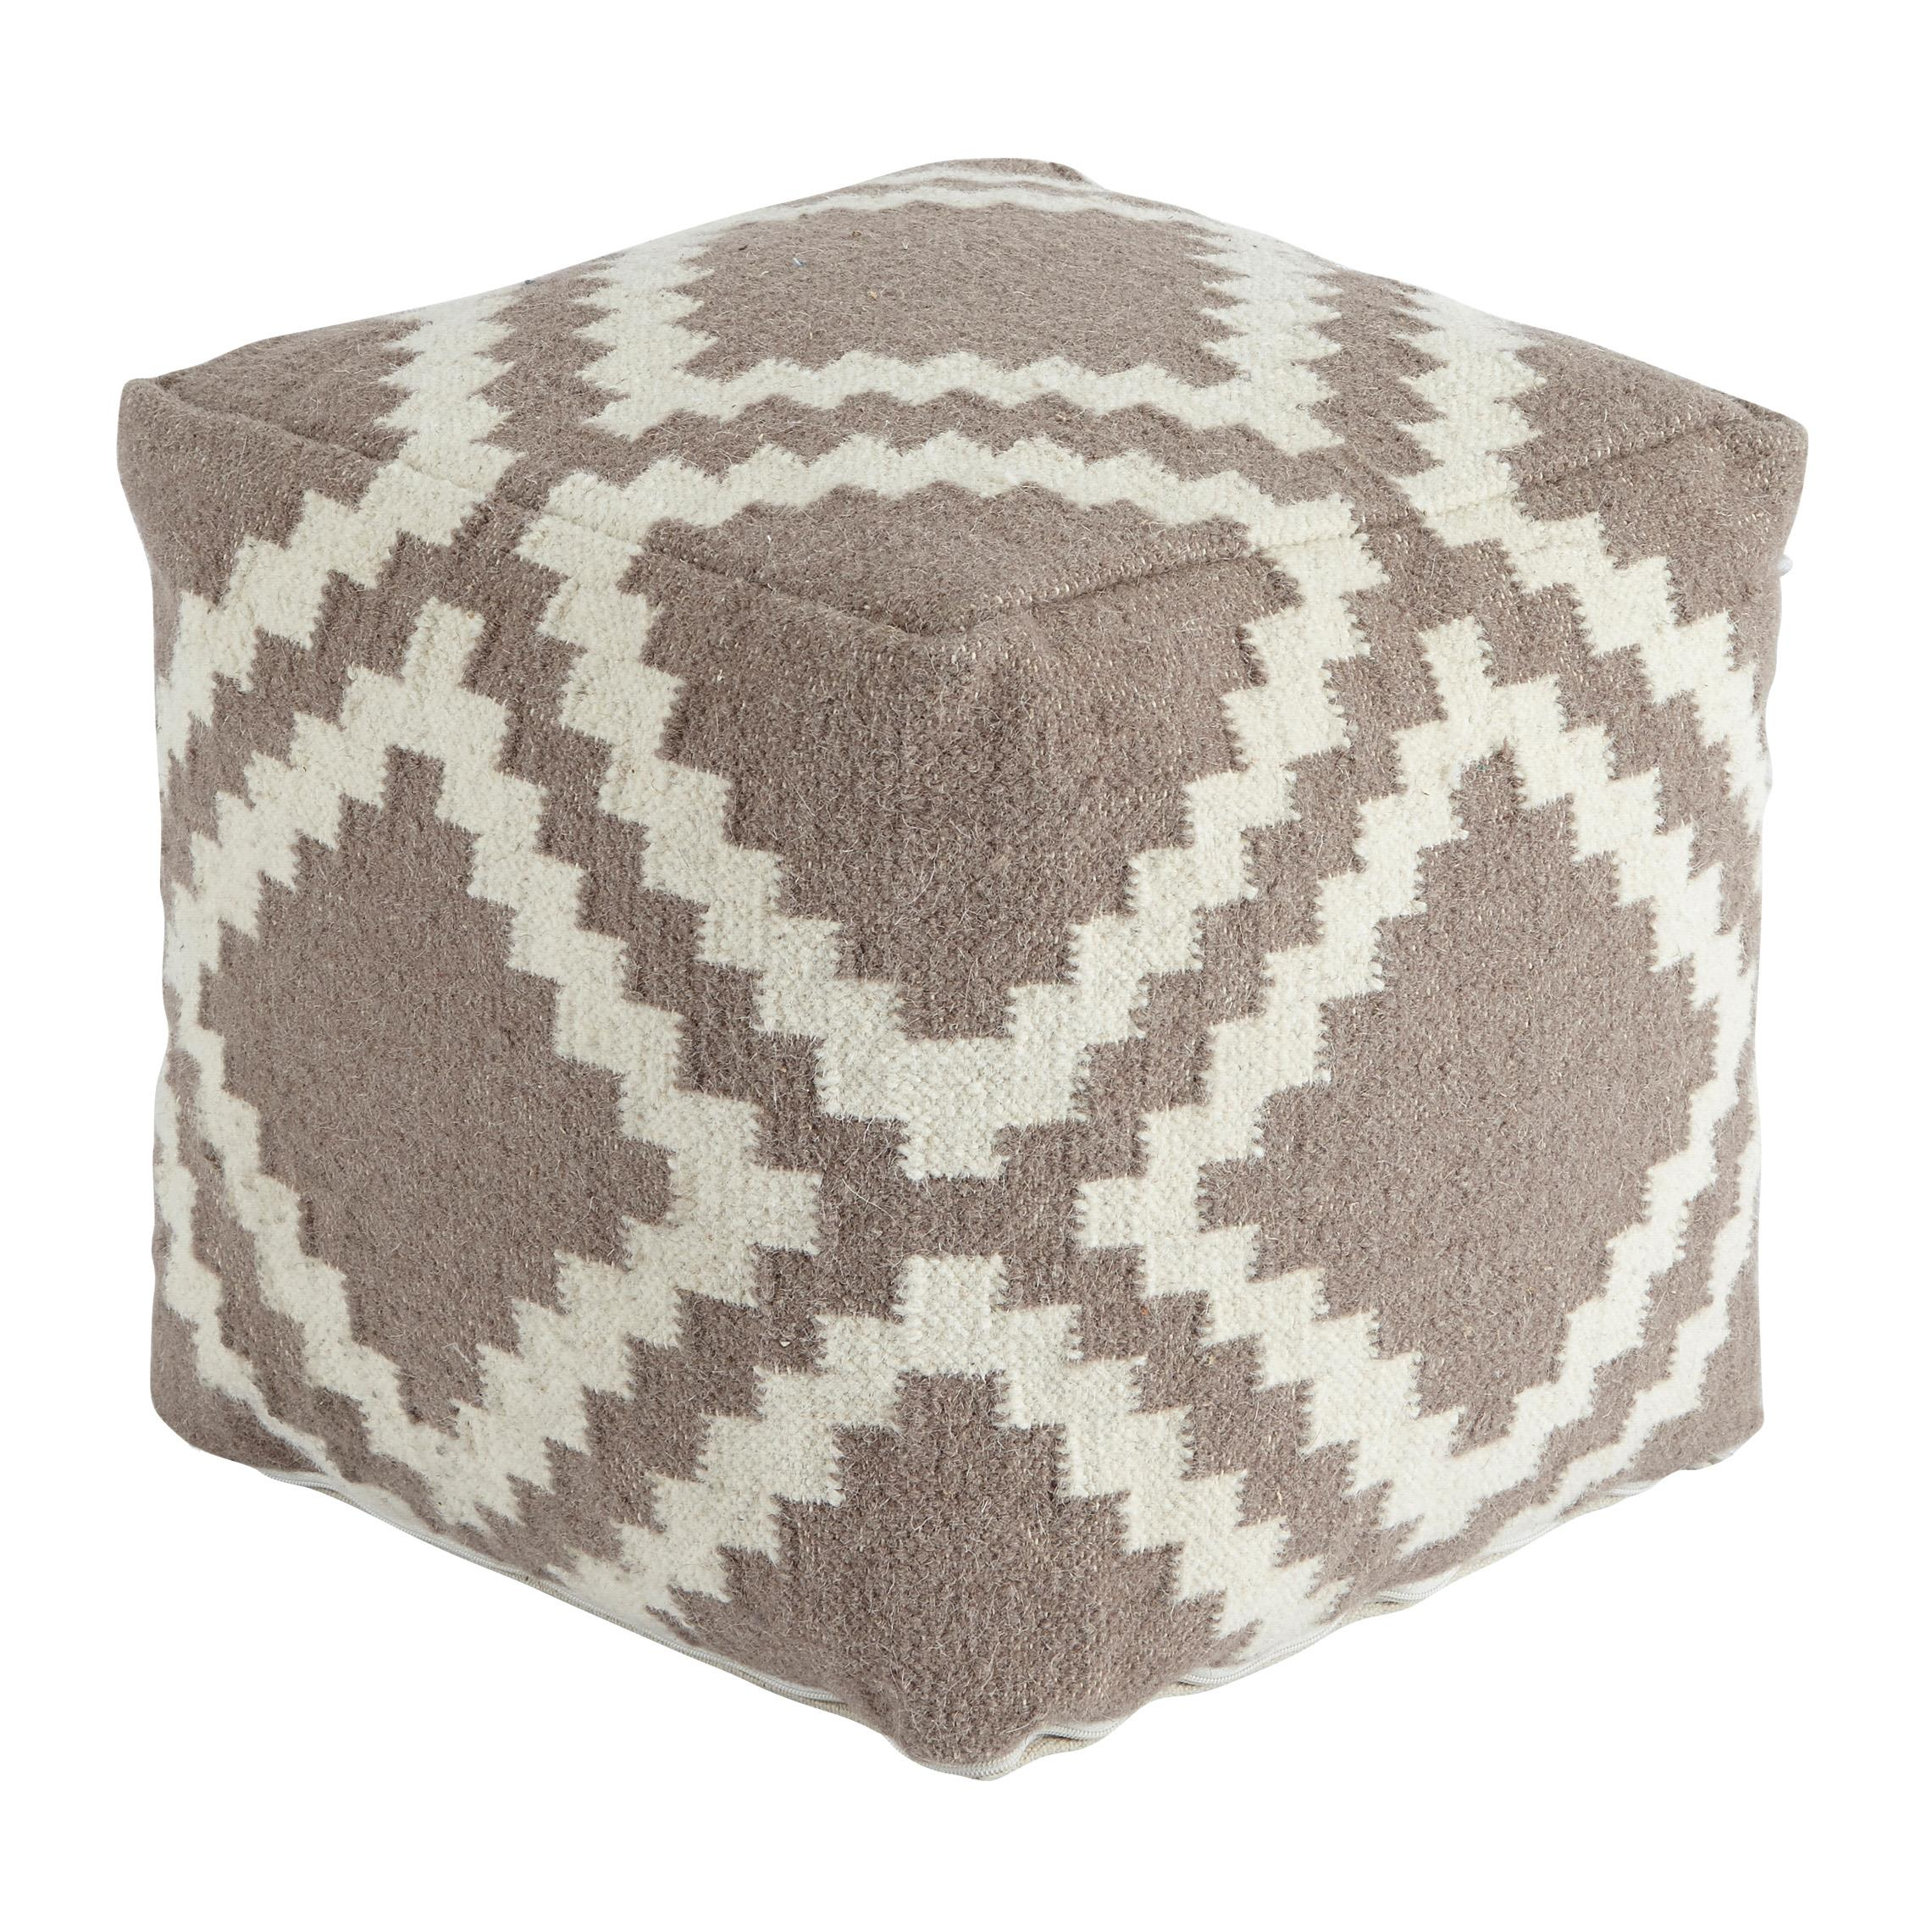 Signature Design by Ashley Poufs Geometric - Gray Pouf - Item Number: A1000418